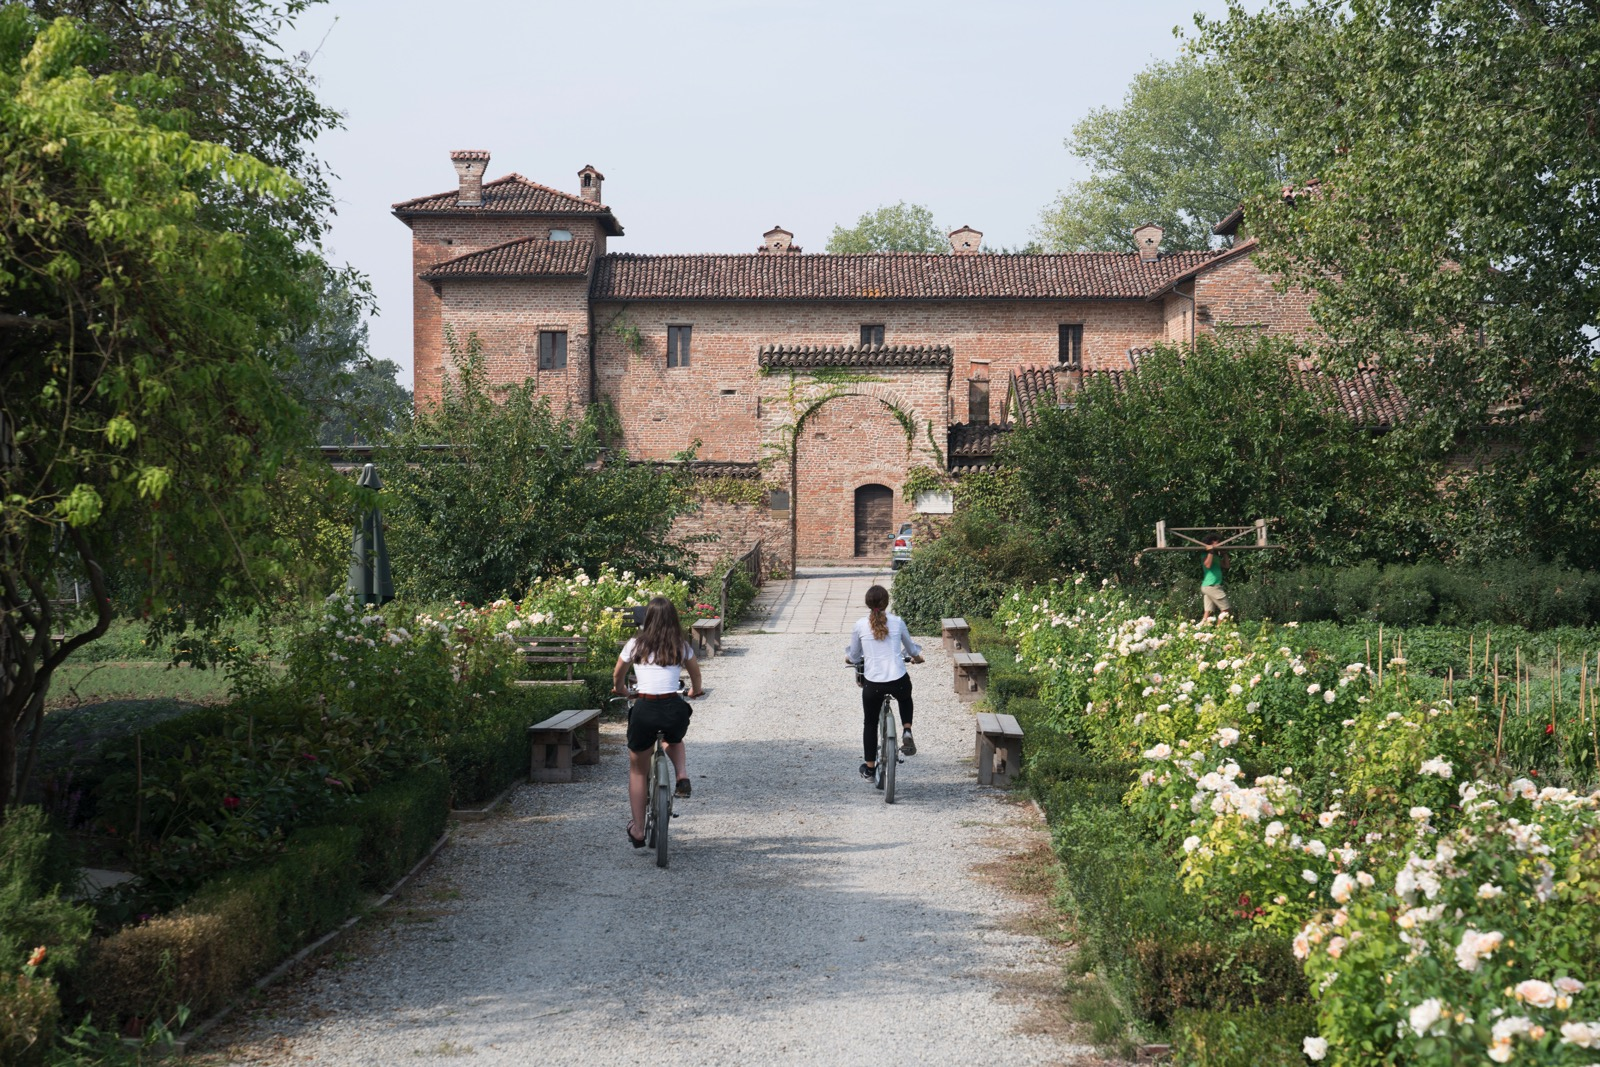 Arriving back at our hotel, the Antica Corte Pallavicina Relais.   (  Polesine Parmense, Emilia-Romagna, Italy.)